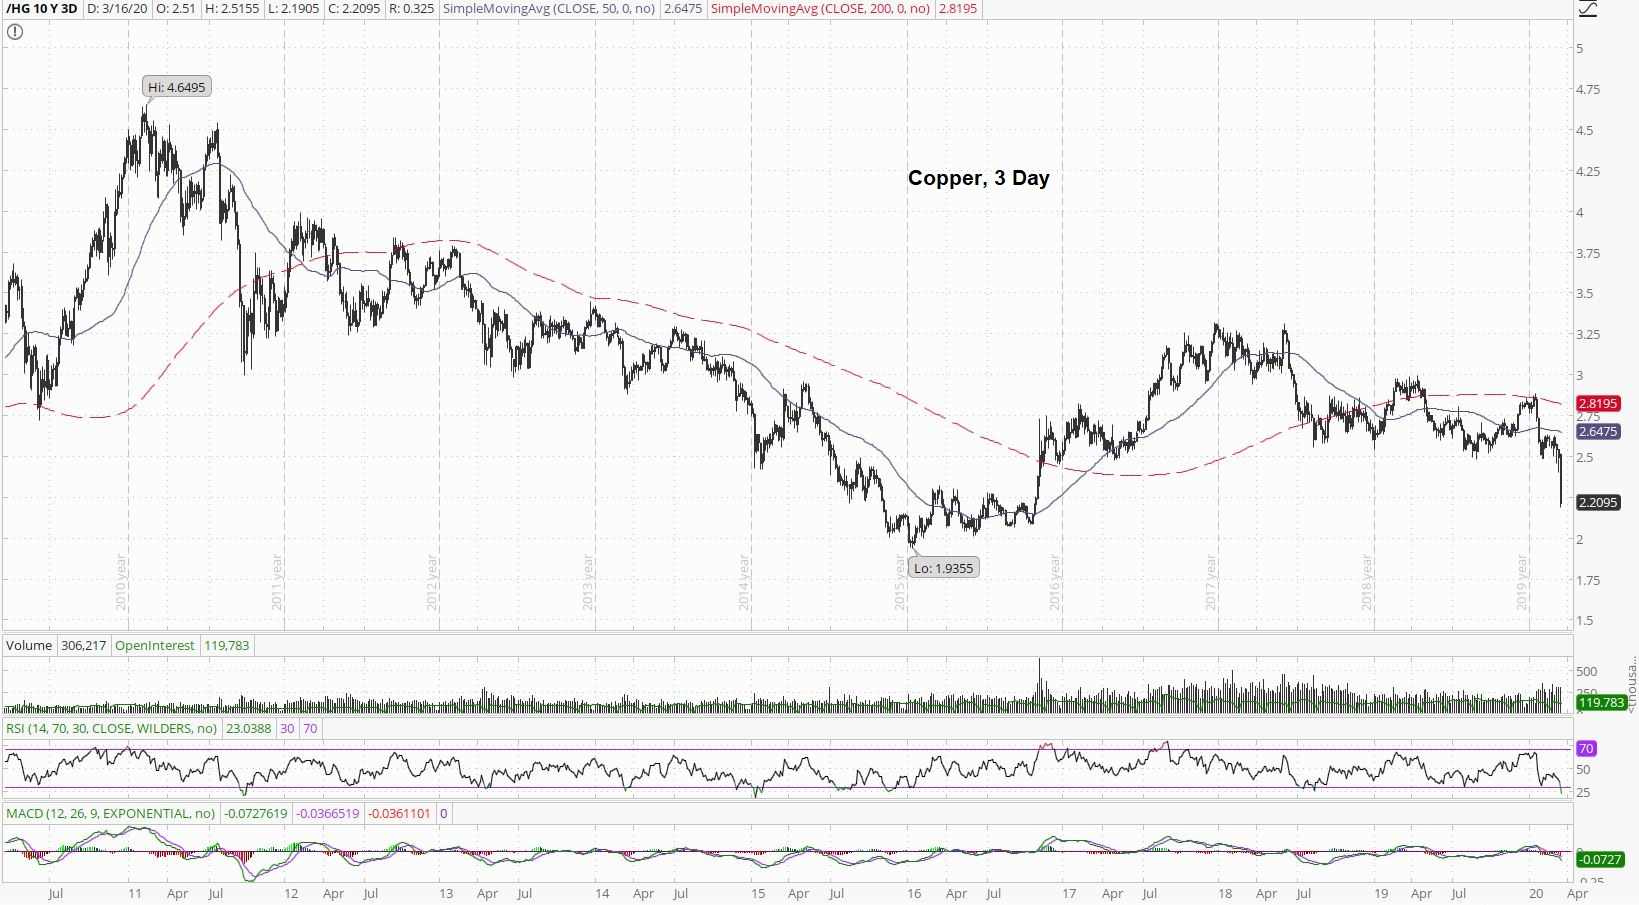 Copper 3 Day Chart